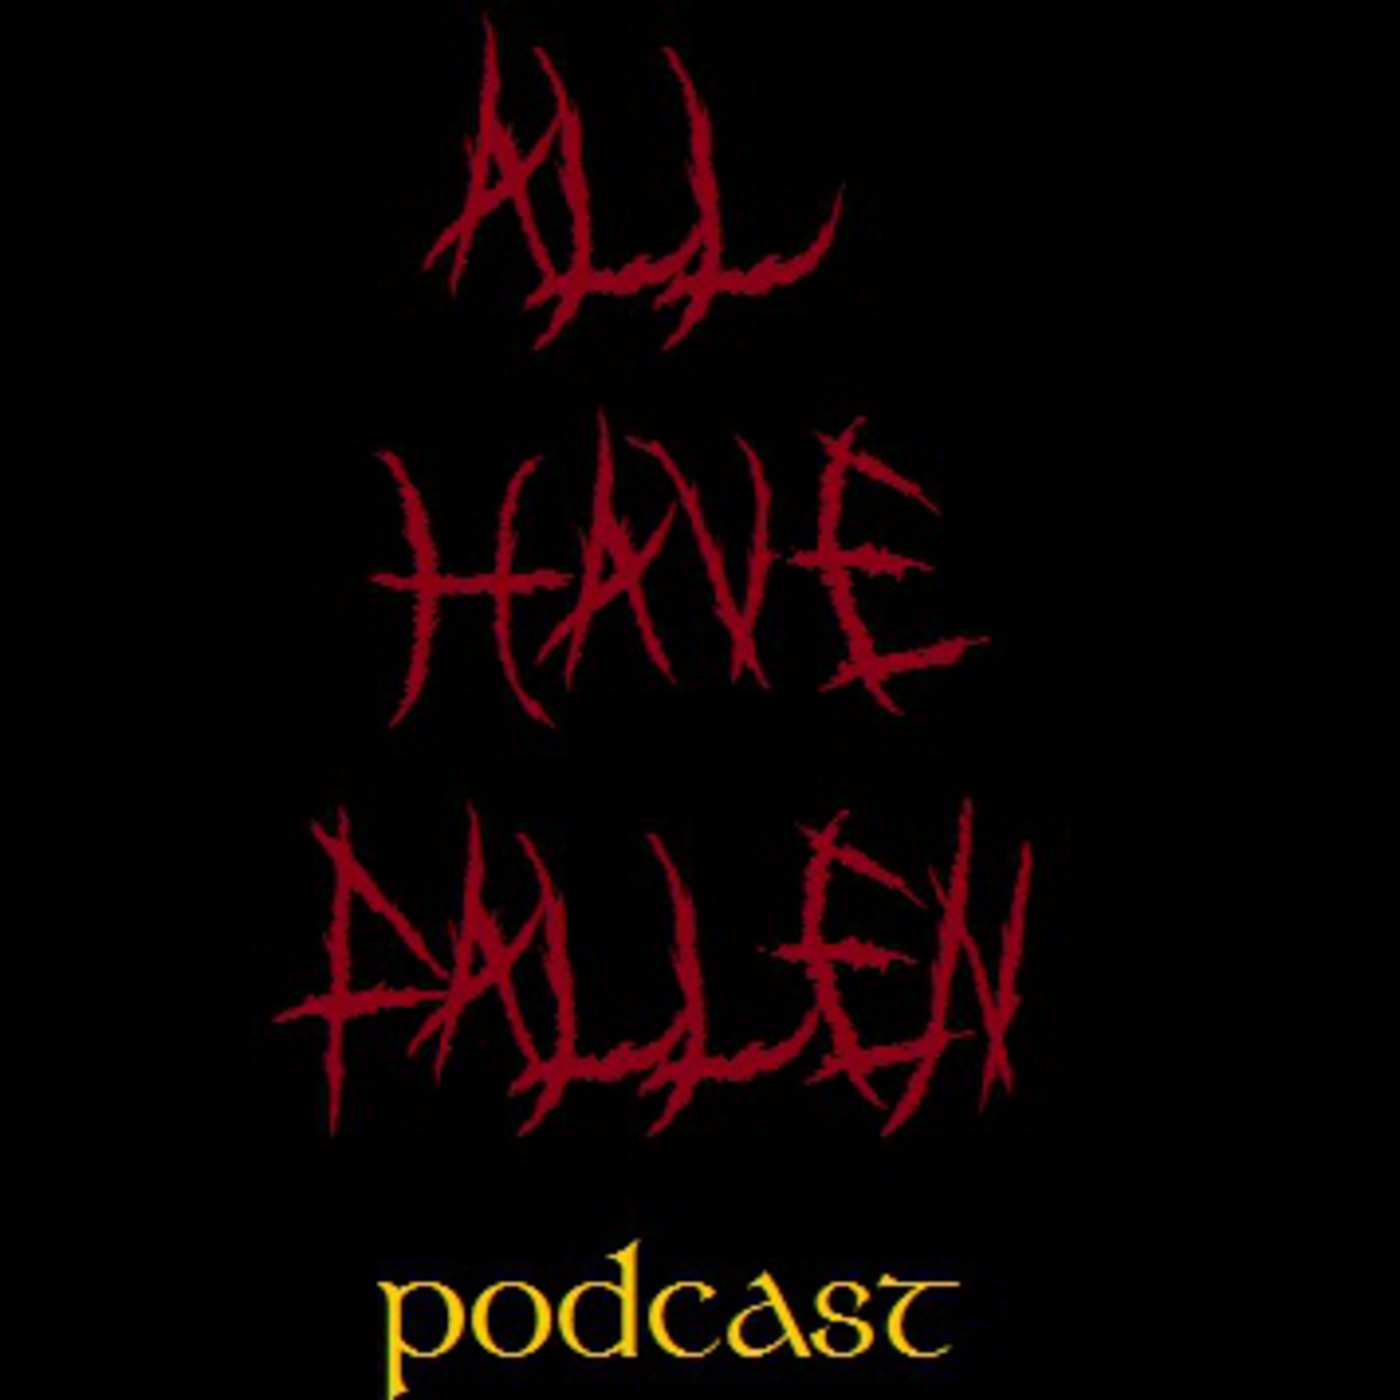 All Have Fallen Podcast